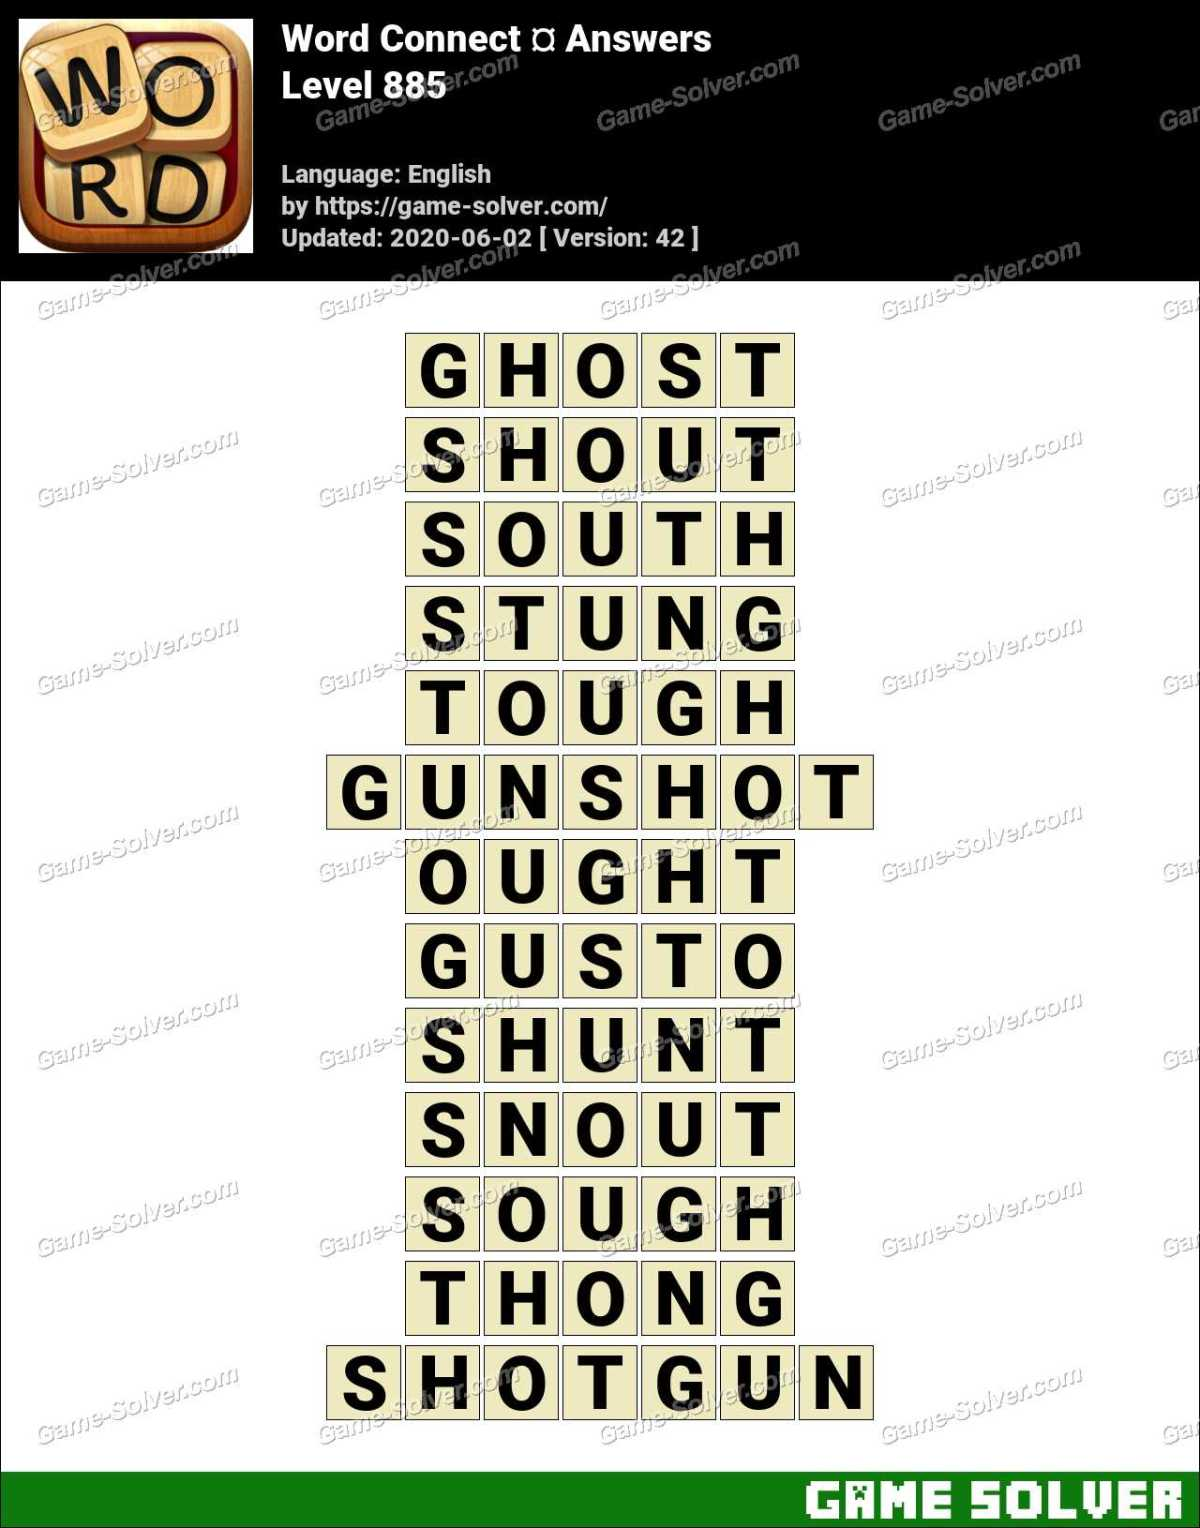 Word Connect Level 885 Answers